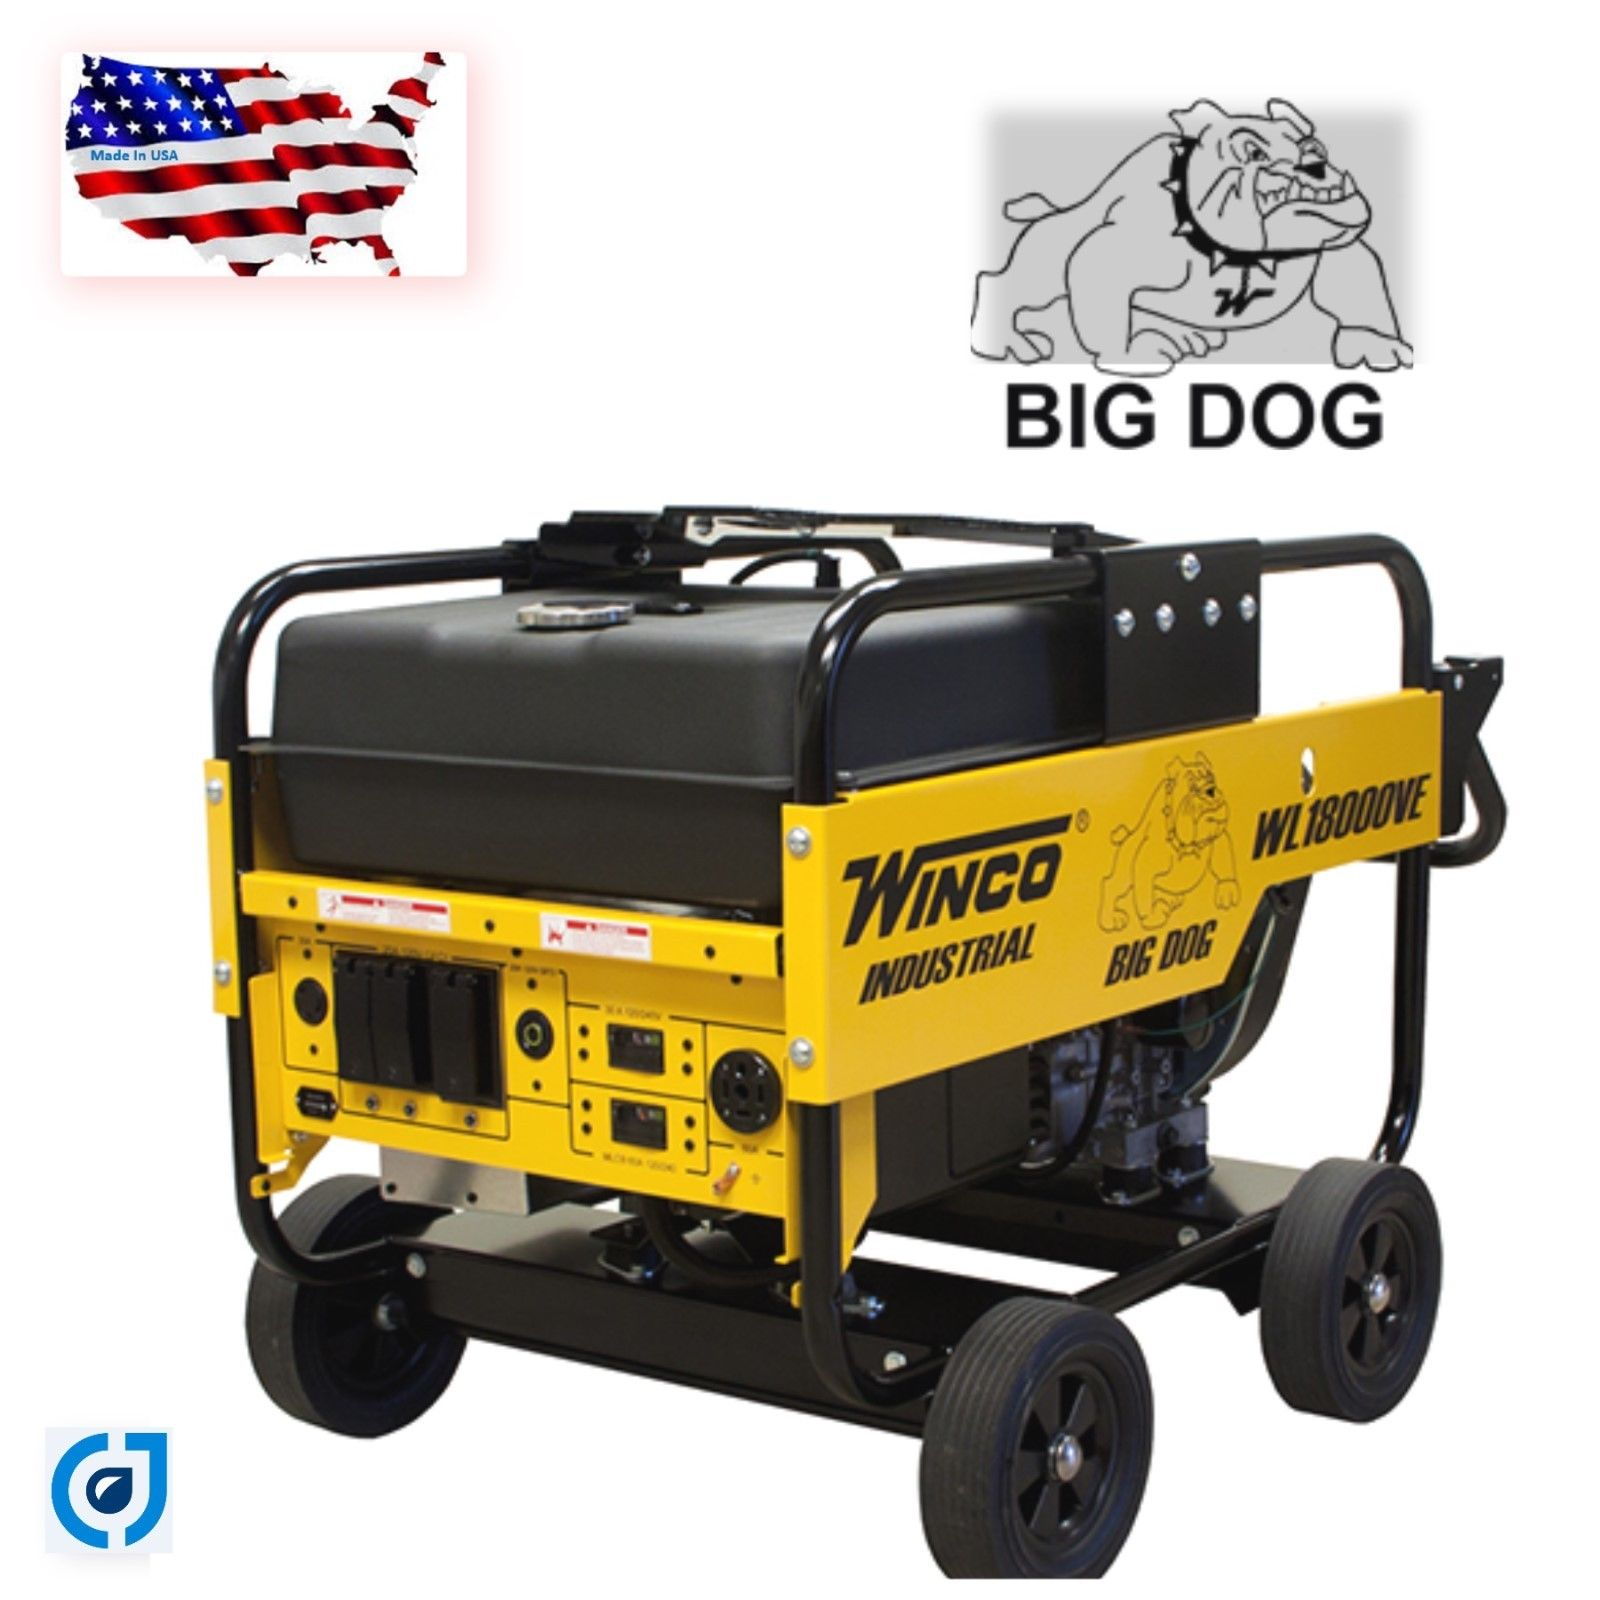 hight resolution of save big now winco wl18000ve industrial portable generator with electric start battery included 18 000 maximum watts 15 000 continuous watts